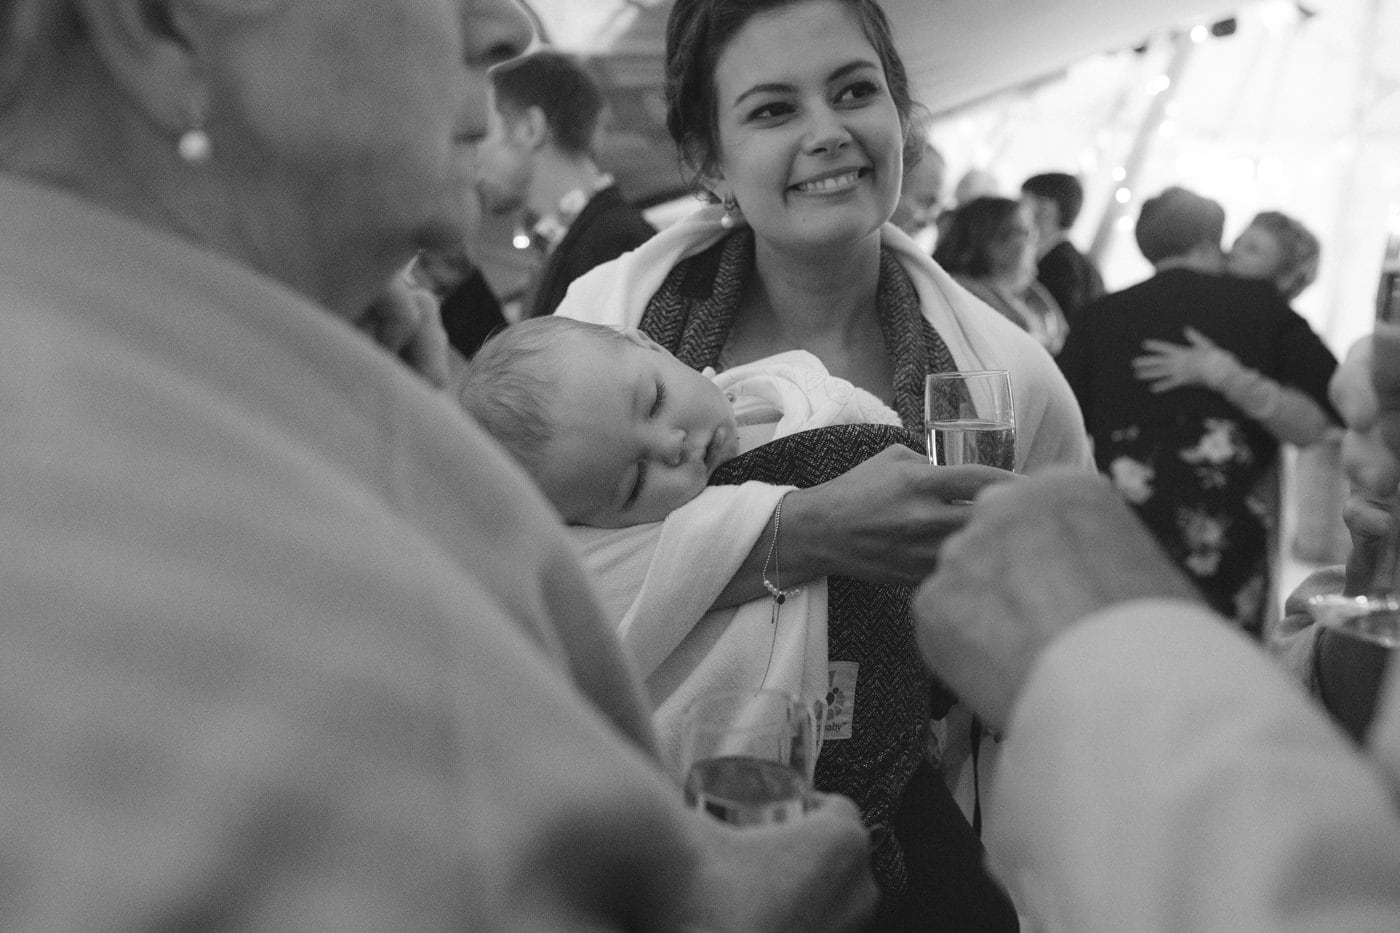 Guests Smiling and Baby Sleeping in Main Venue at Tipi Wedding On The Shores Of Ullswater